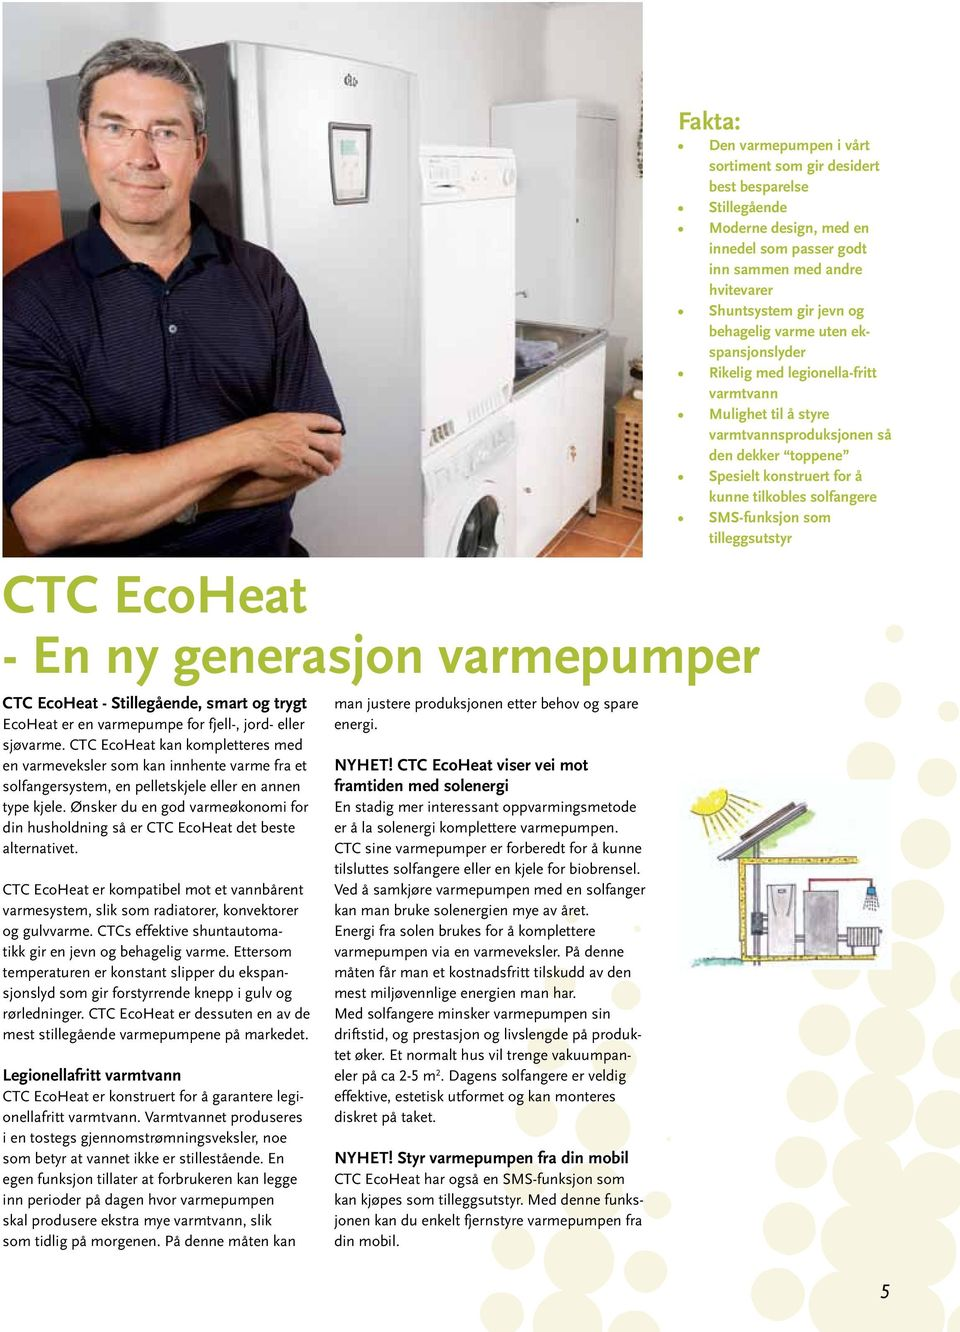 Ønsker du en god varmeøkonomi for din husholdning så er CTC EcoHeat det beste alternativet. CTC EcoHeat er kompatibel mot et vannbårent varmesystem, slik som radiatorer, konvektorer og gulvvarme.